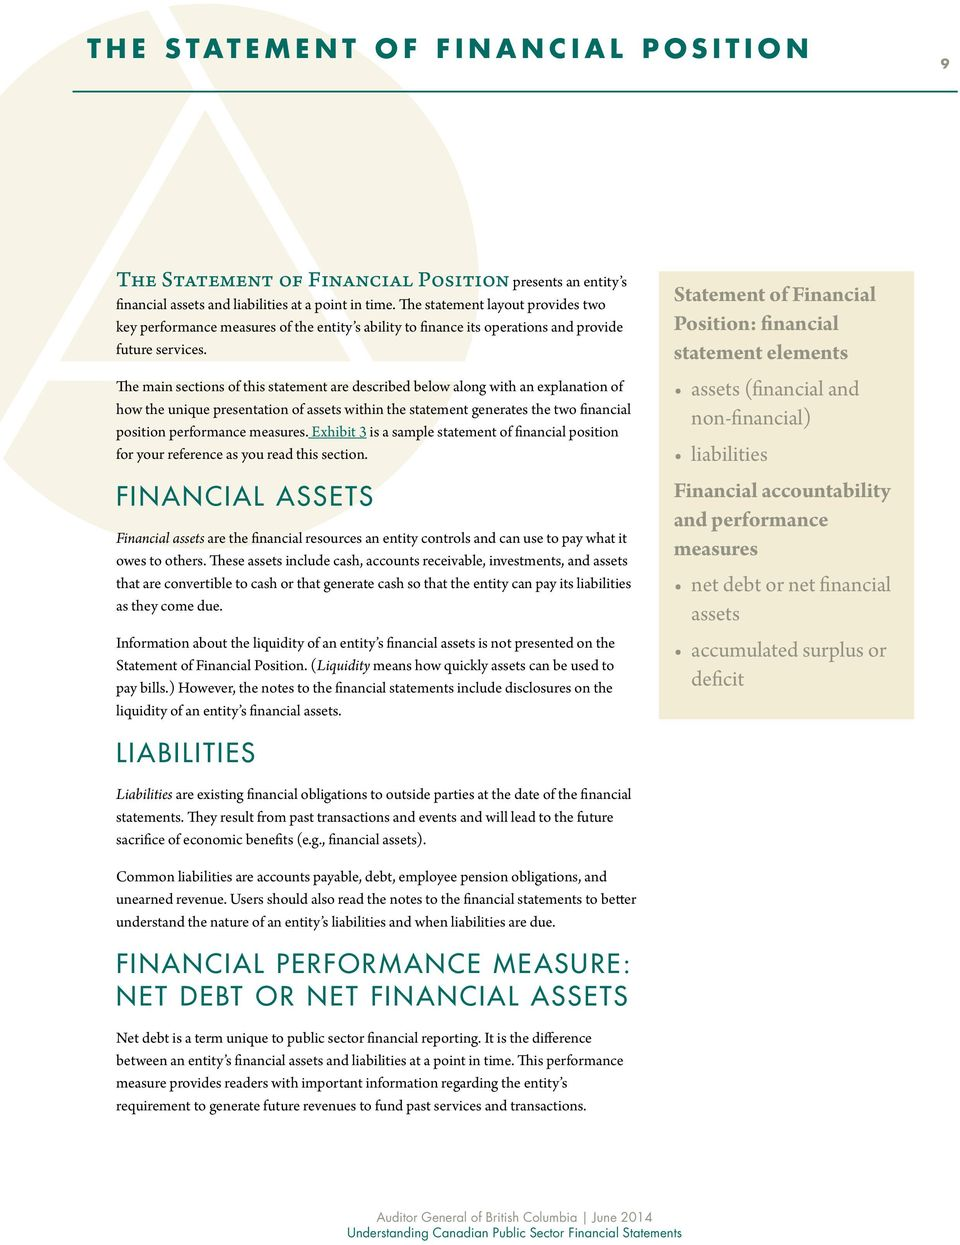 The main sections of this statement are described below along with an explanation of how the unique presentation of assets within the statement generates the two financial position performance